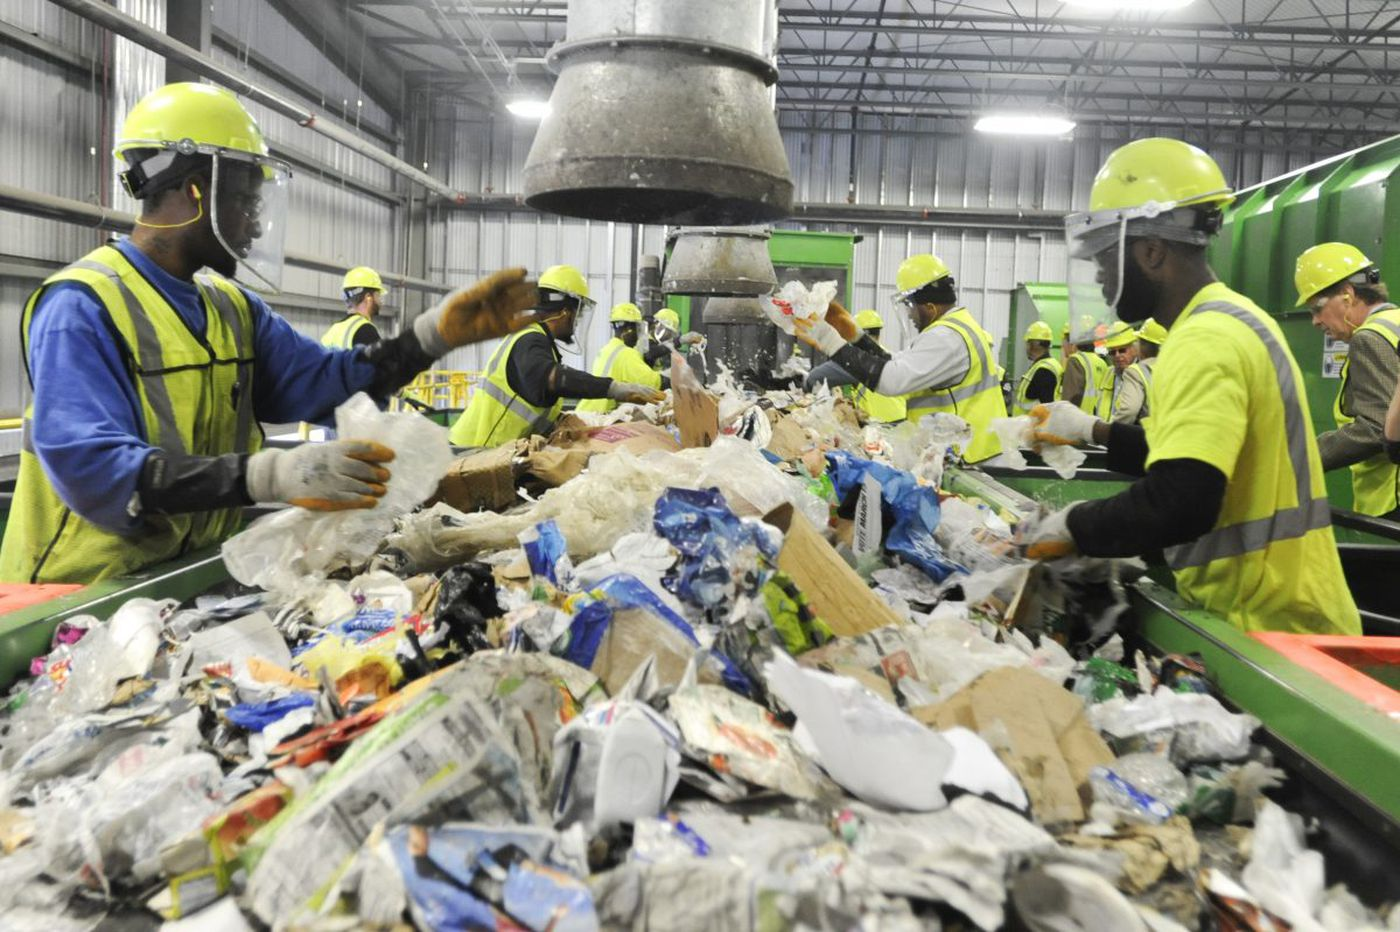 Recycling in Philly: How the City plans to make more businesses comply | Commentary